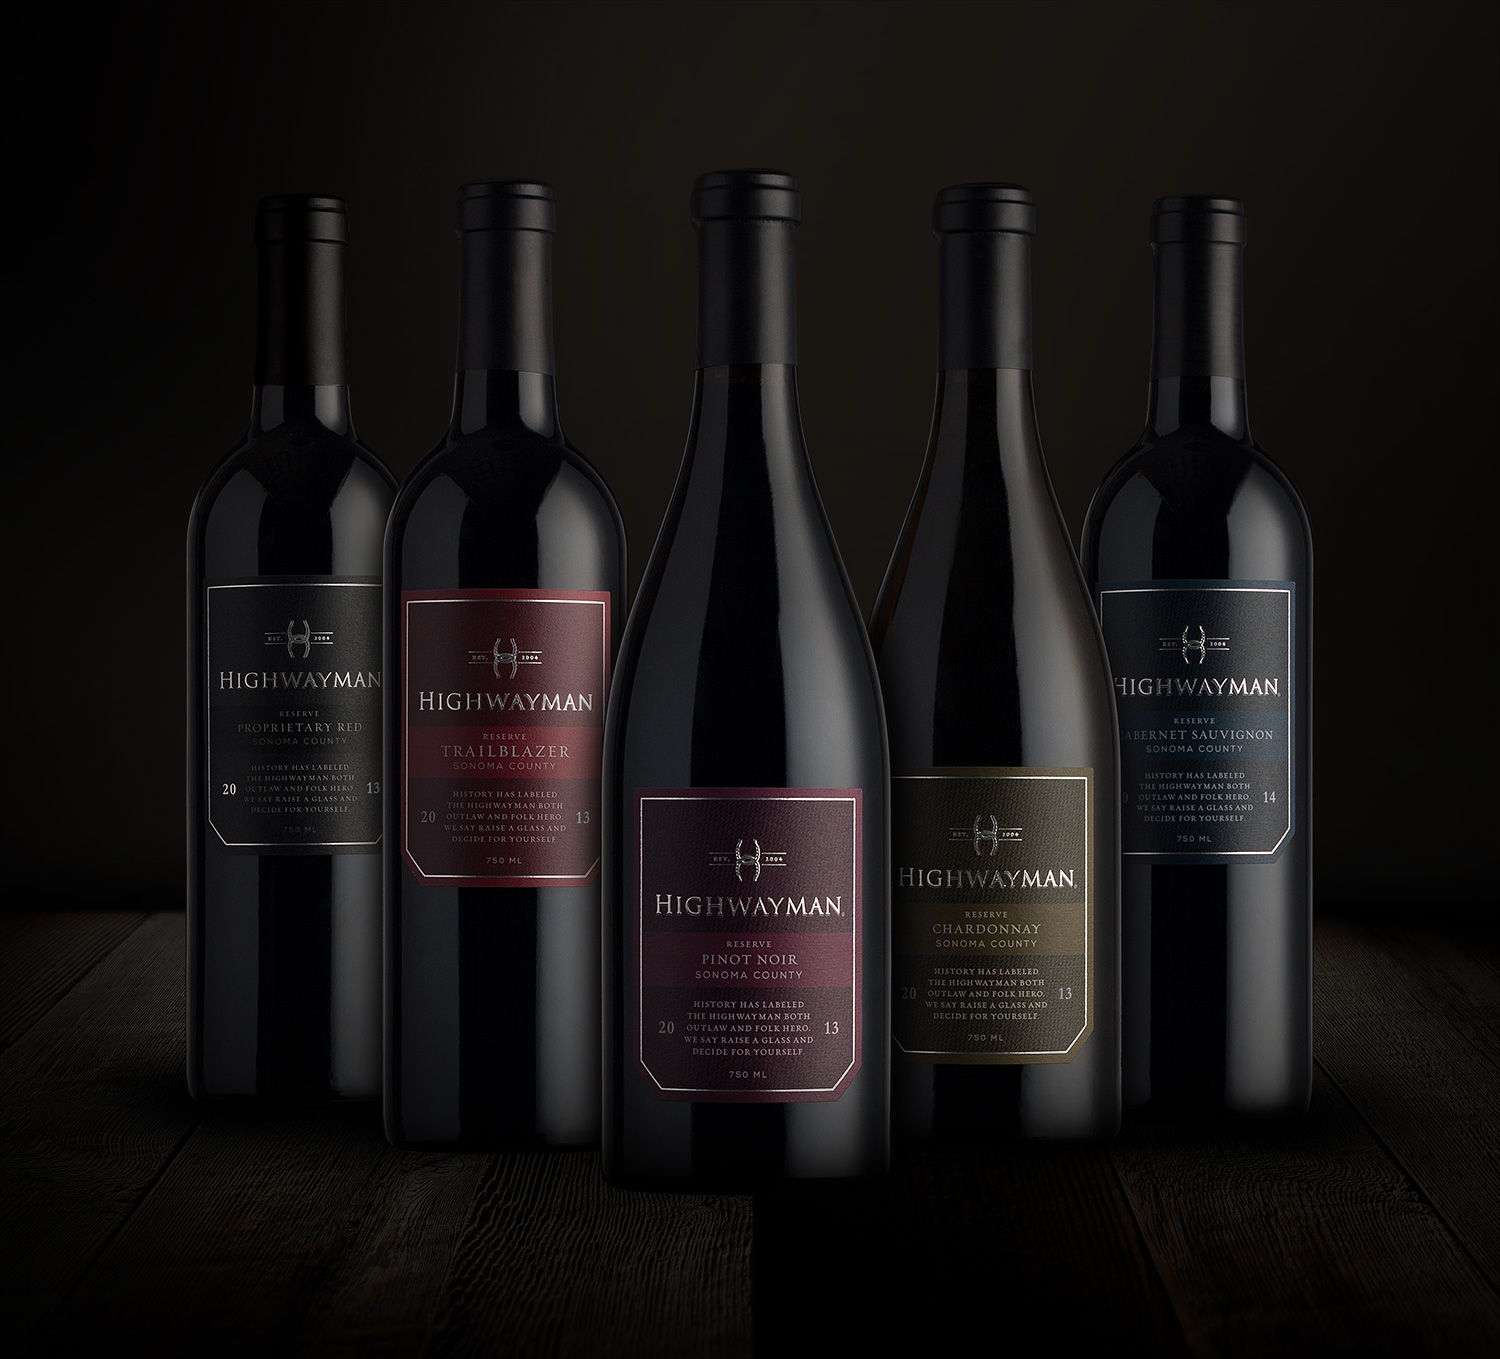 Highwayman Wine Label Design System